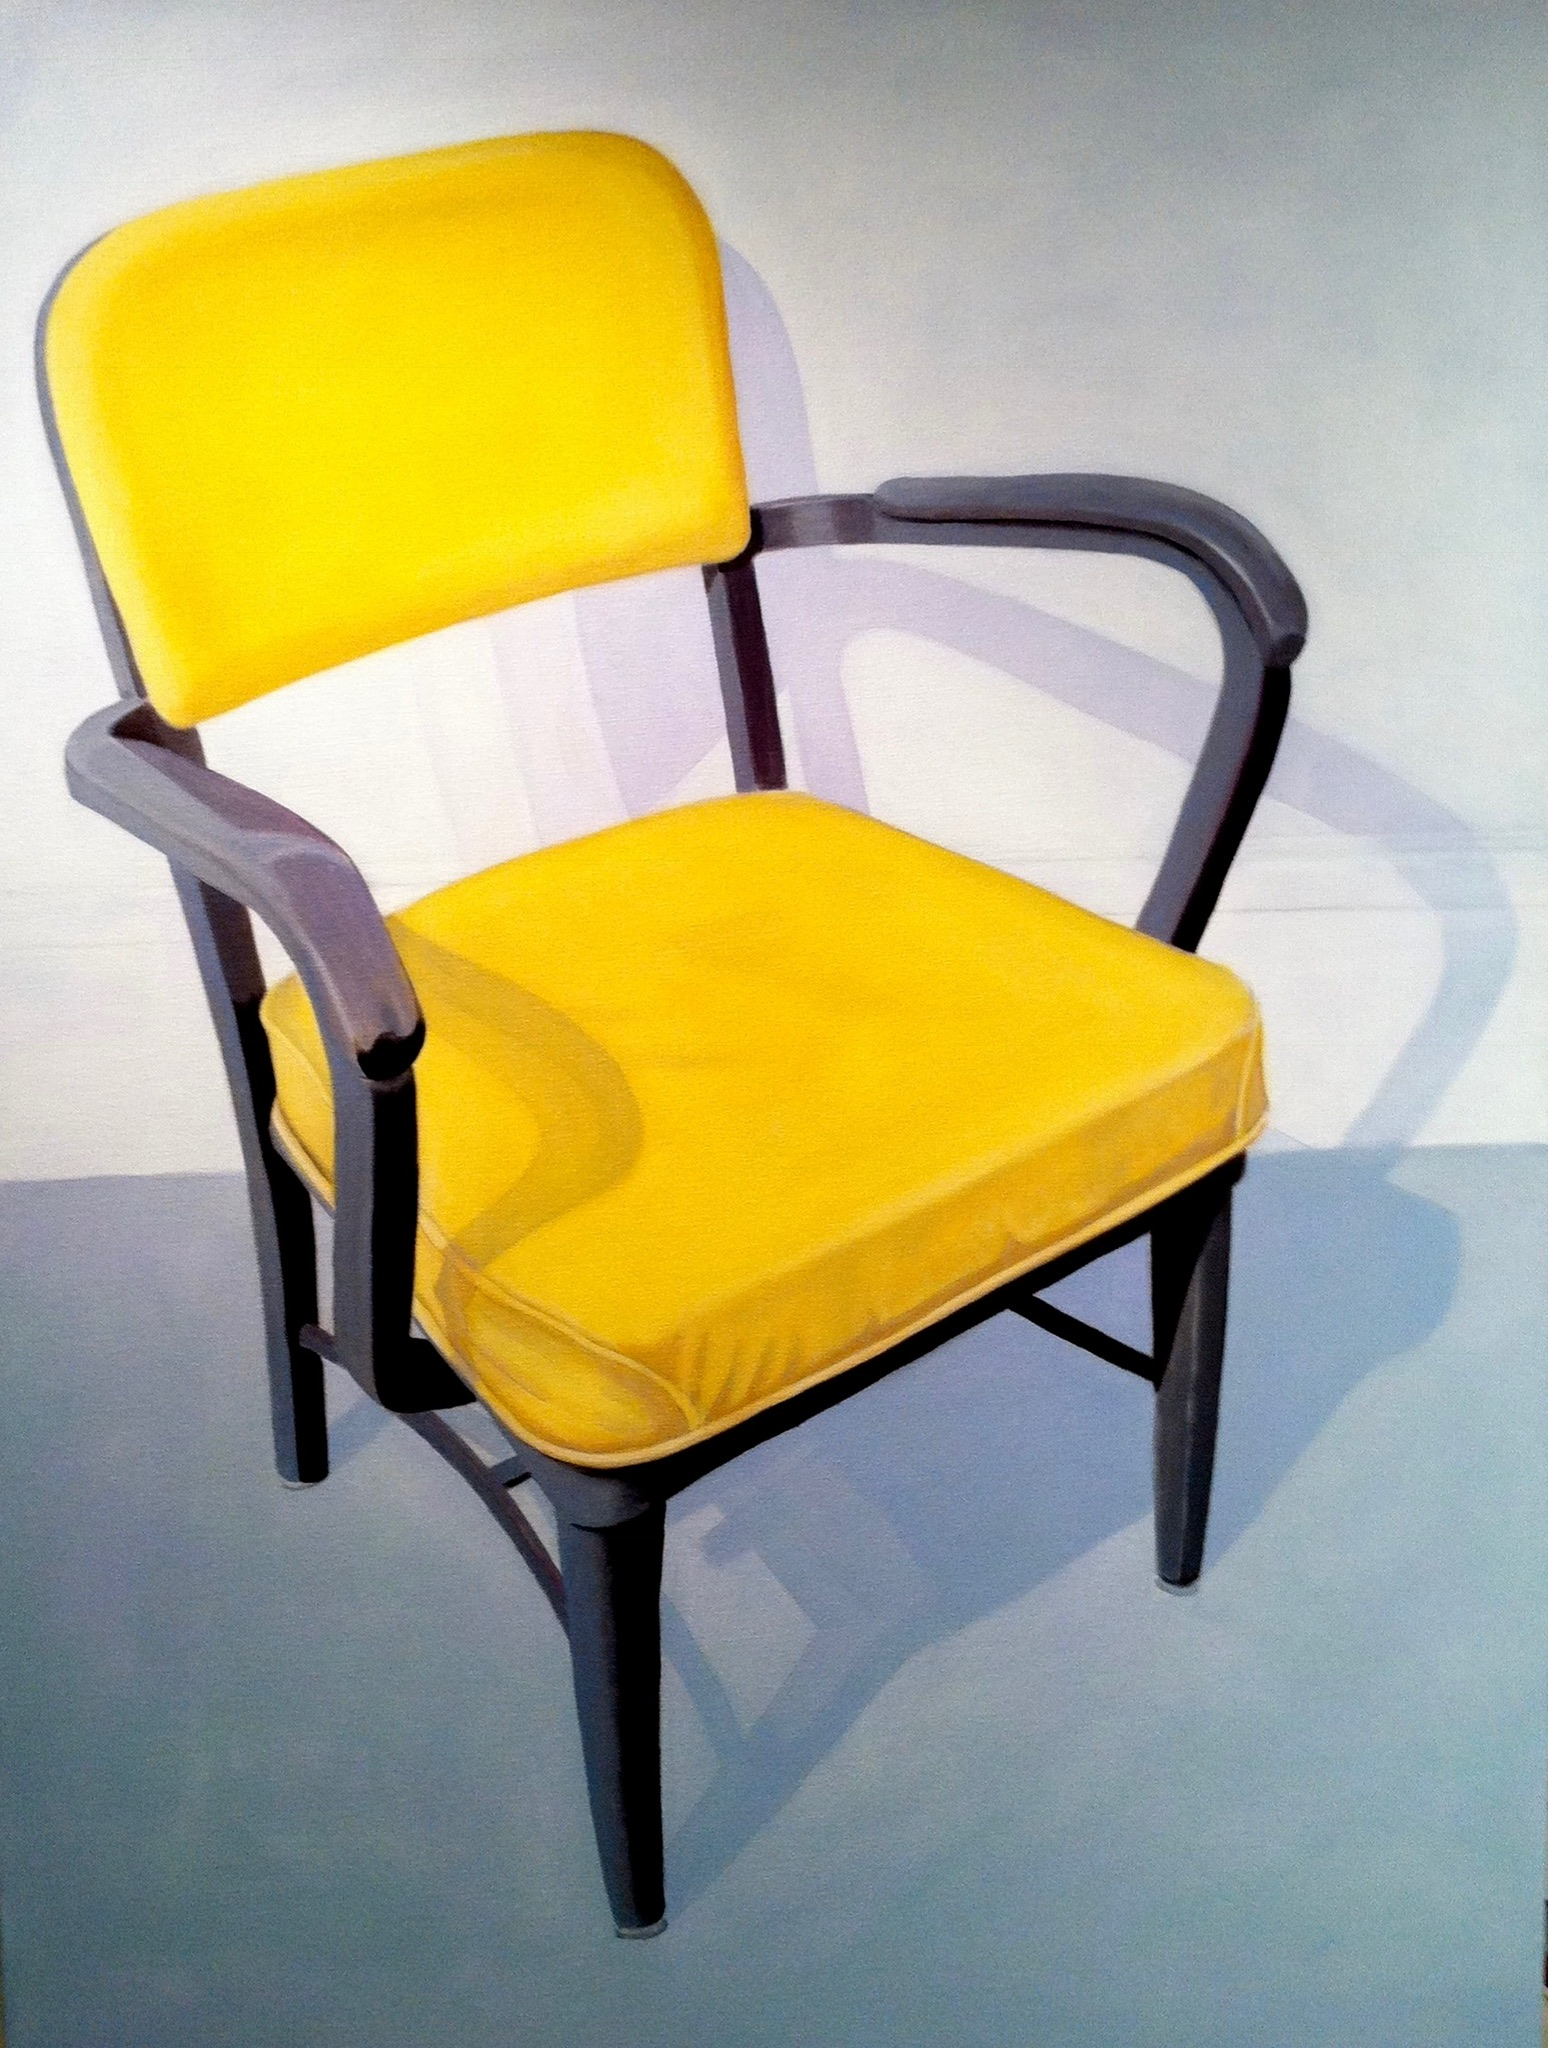 Yellow Office Chair, 36 x 48, acrylic